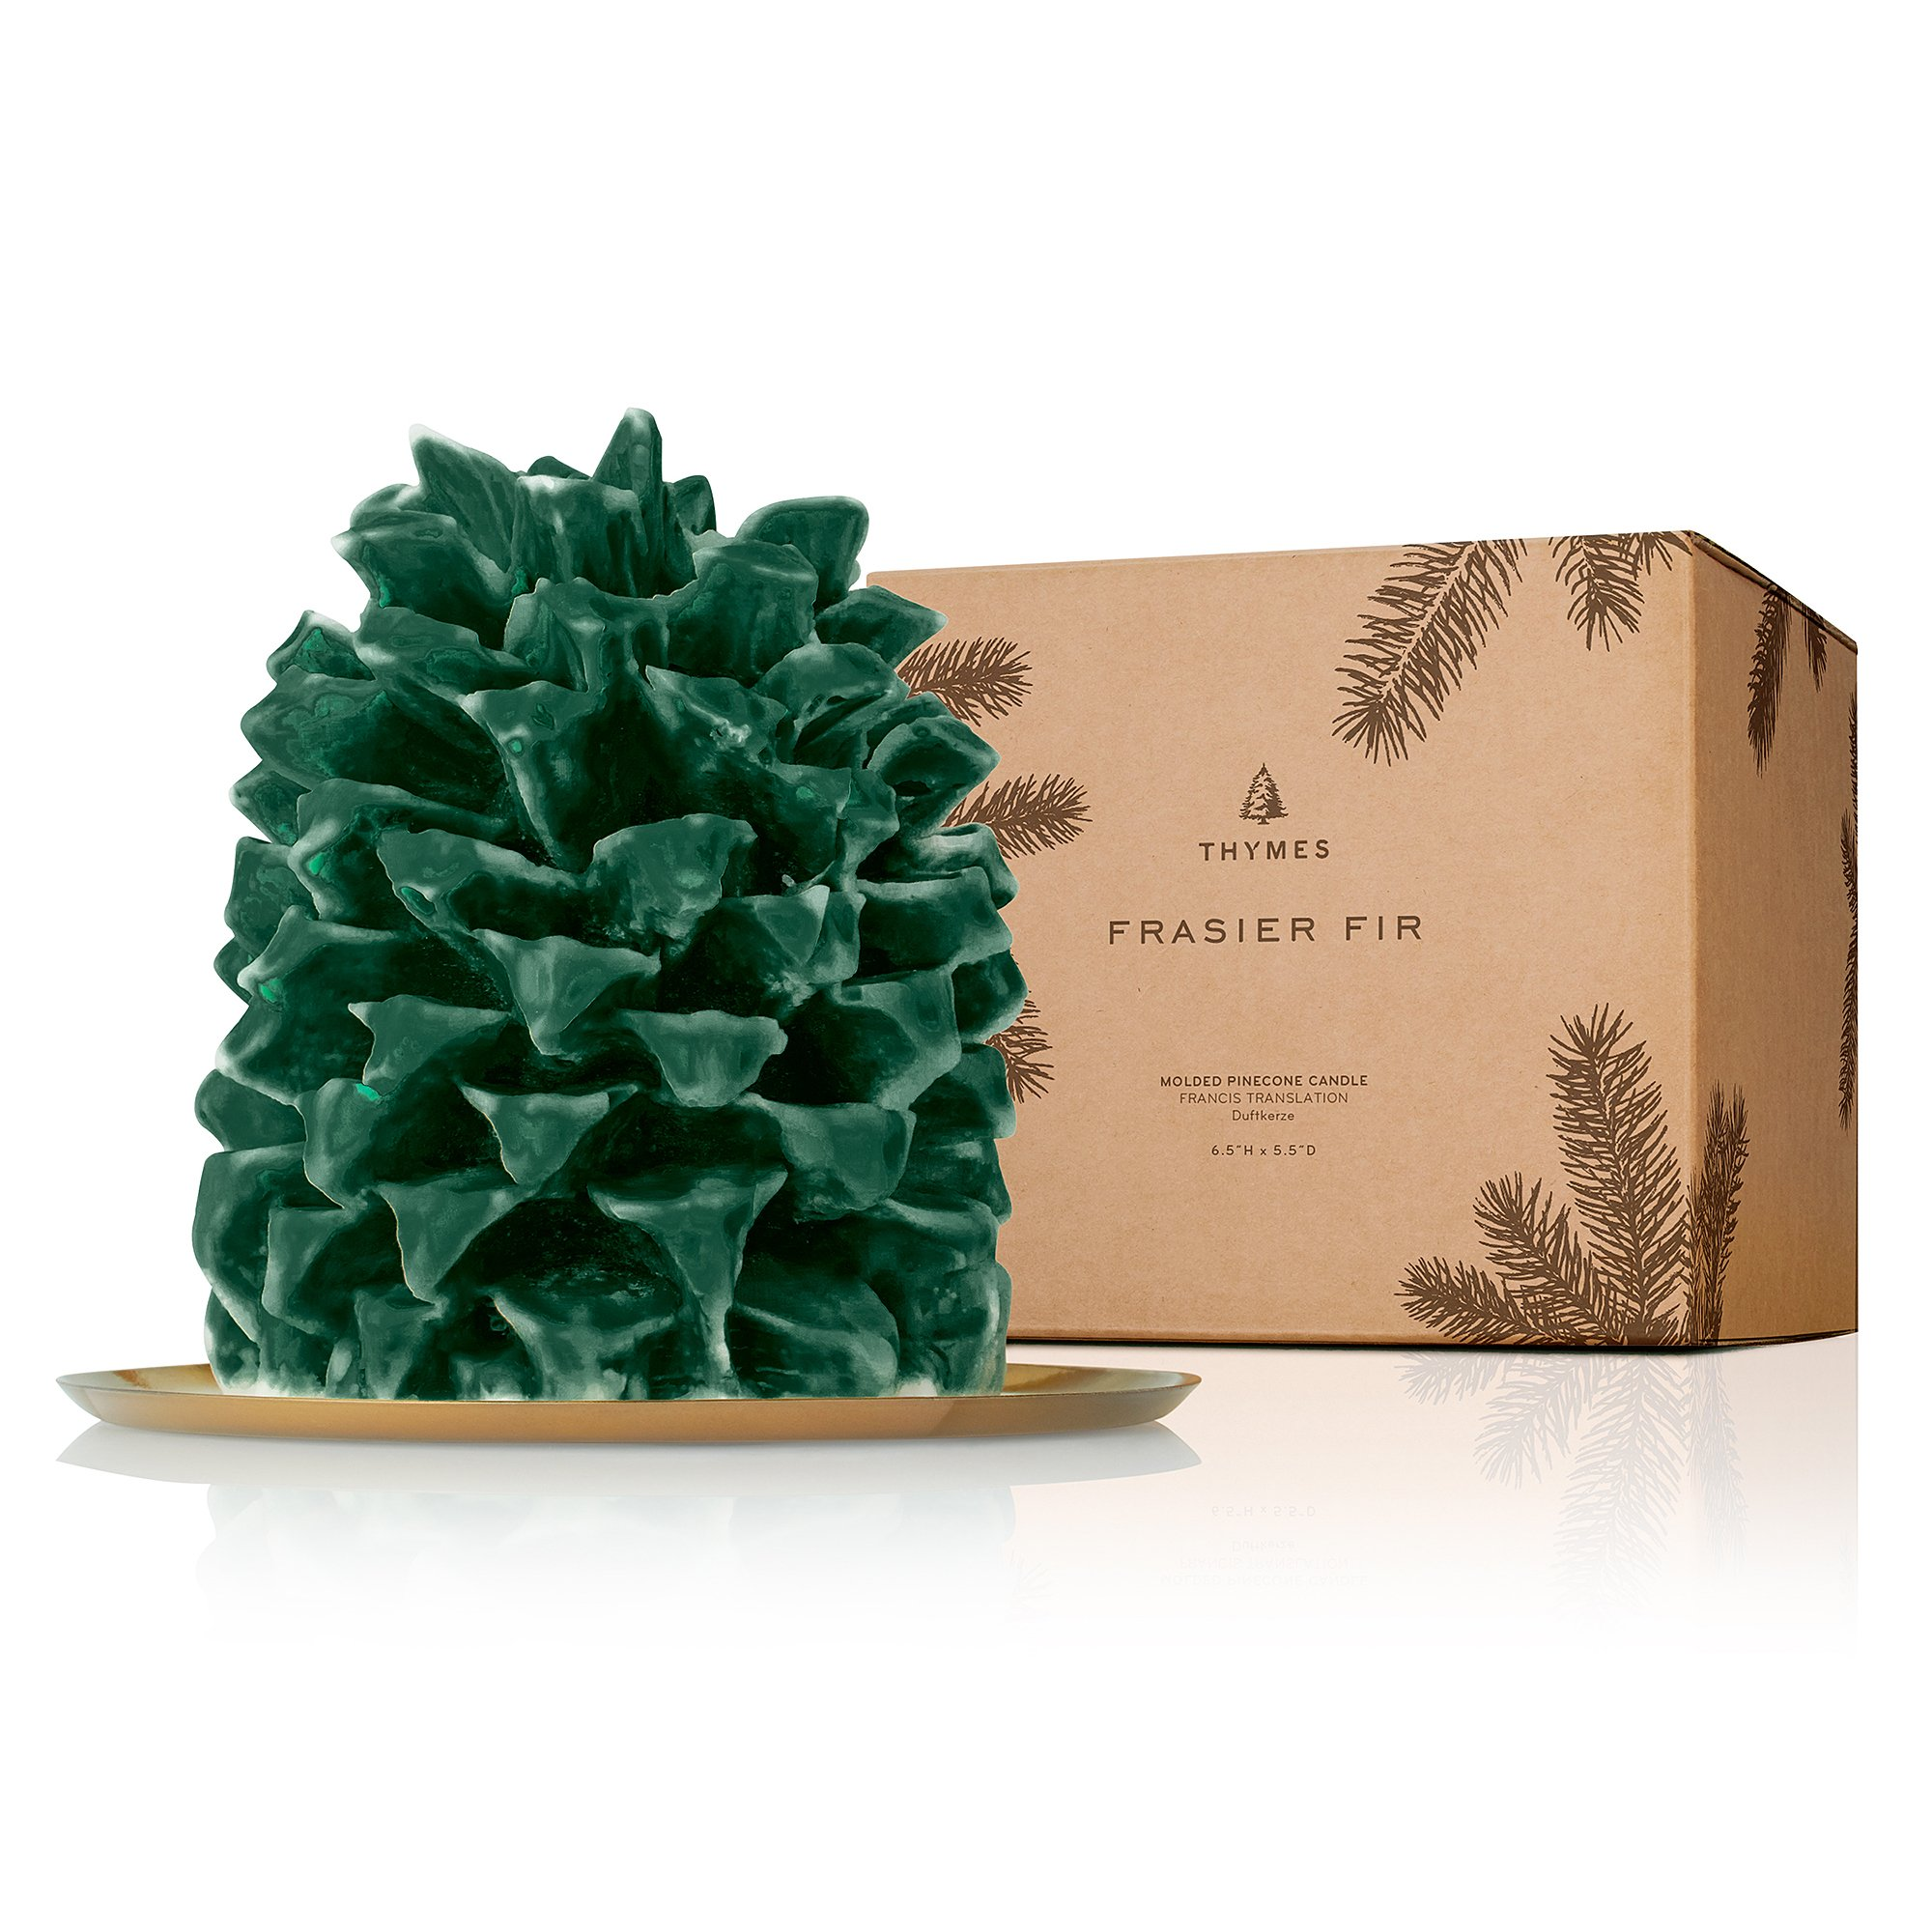 Thymes Frasier Fir - Northwoods Molded Pinecone Candle Large